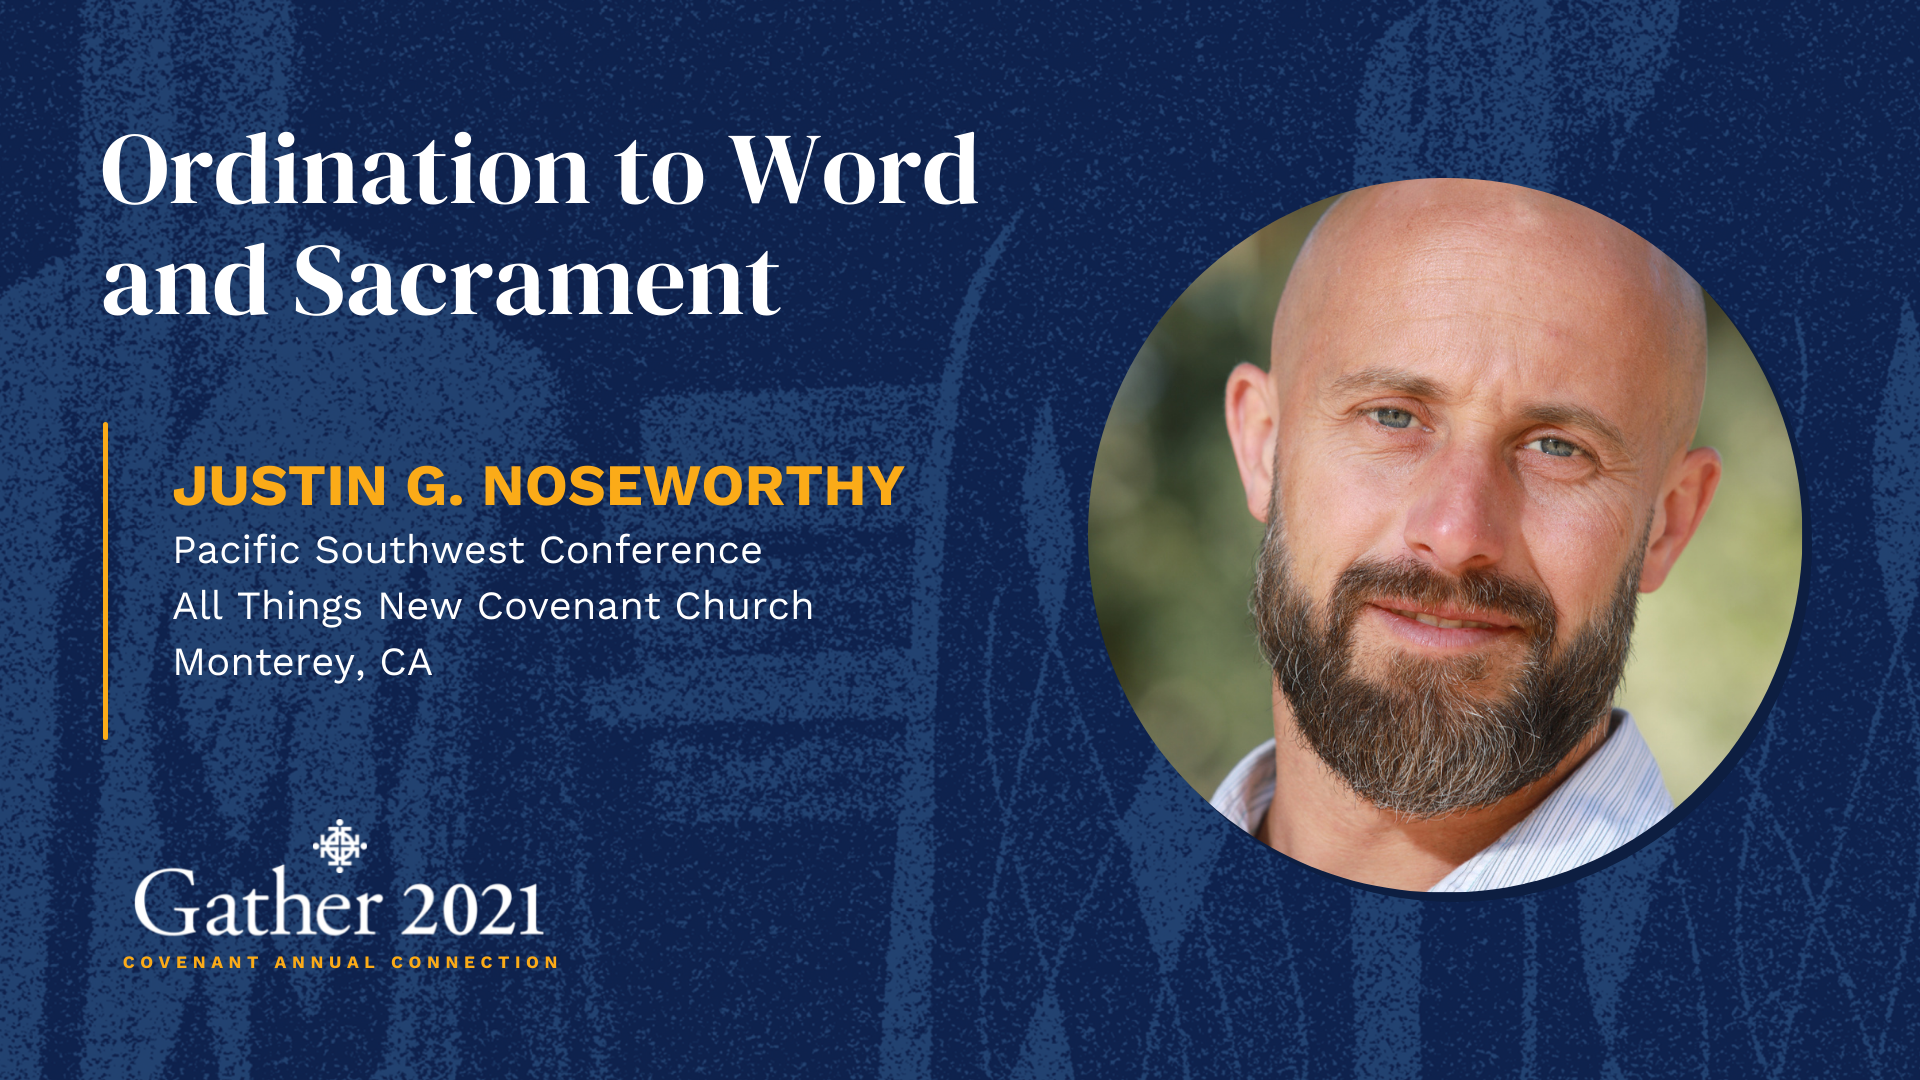 Justin G. Noseworthy